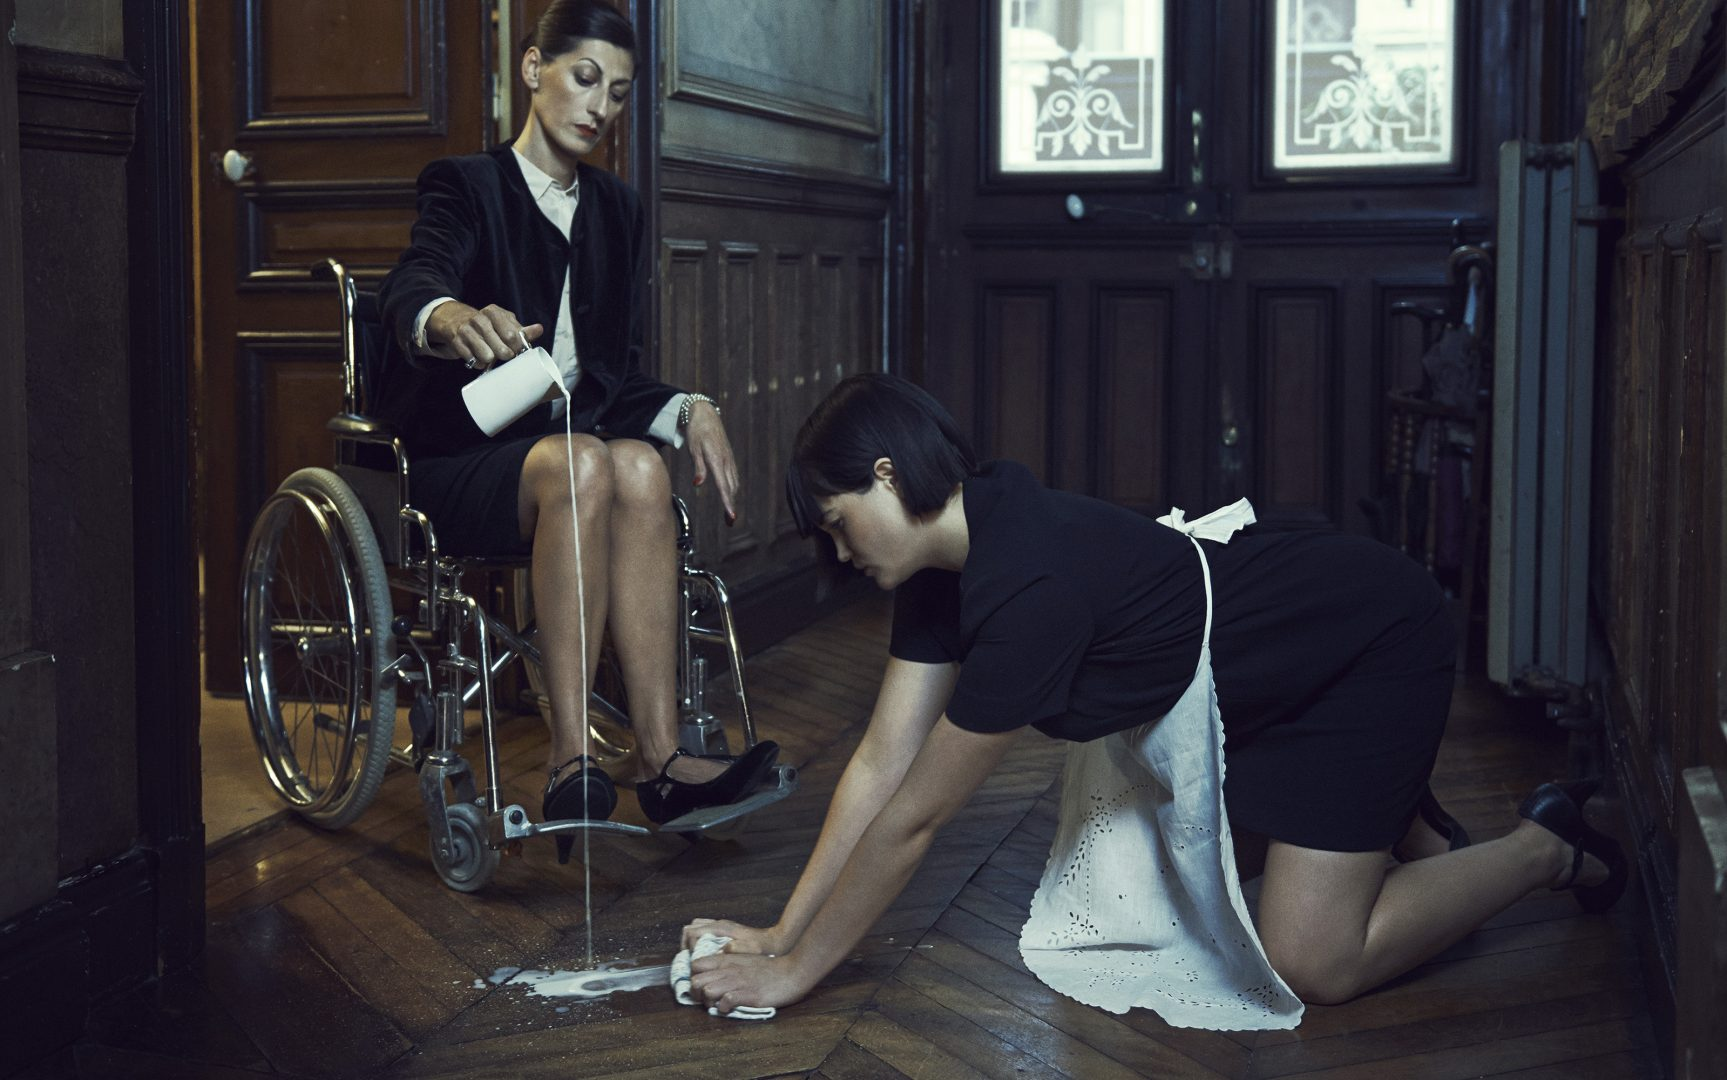 Women in wheel chair pour out milk on the floor, girl cleans it up by Stefan Rappo